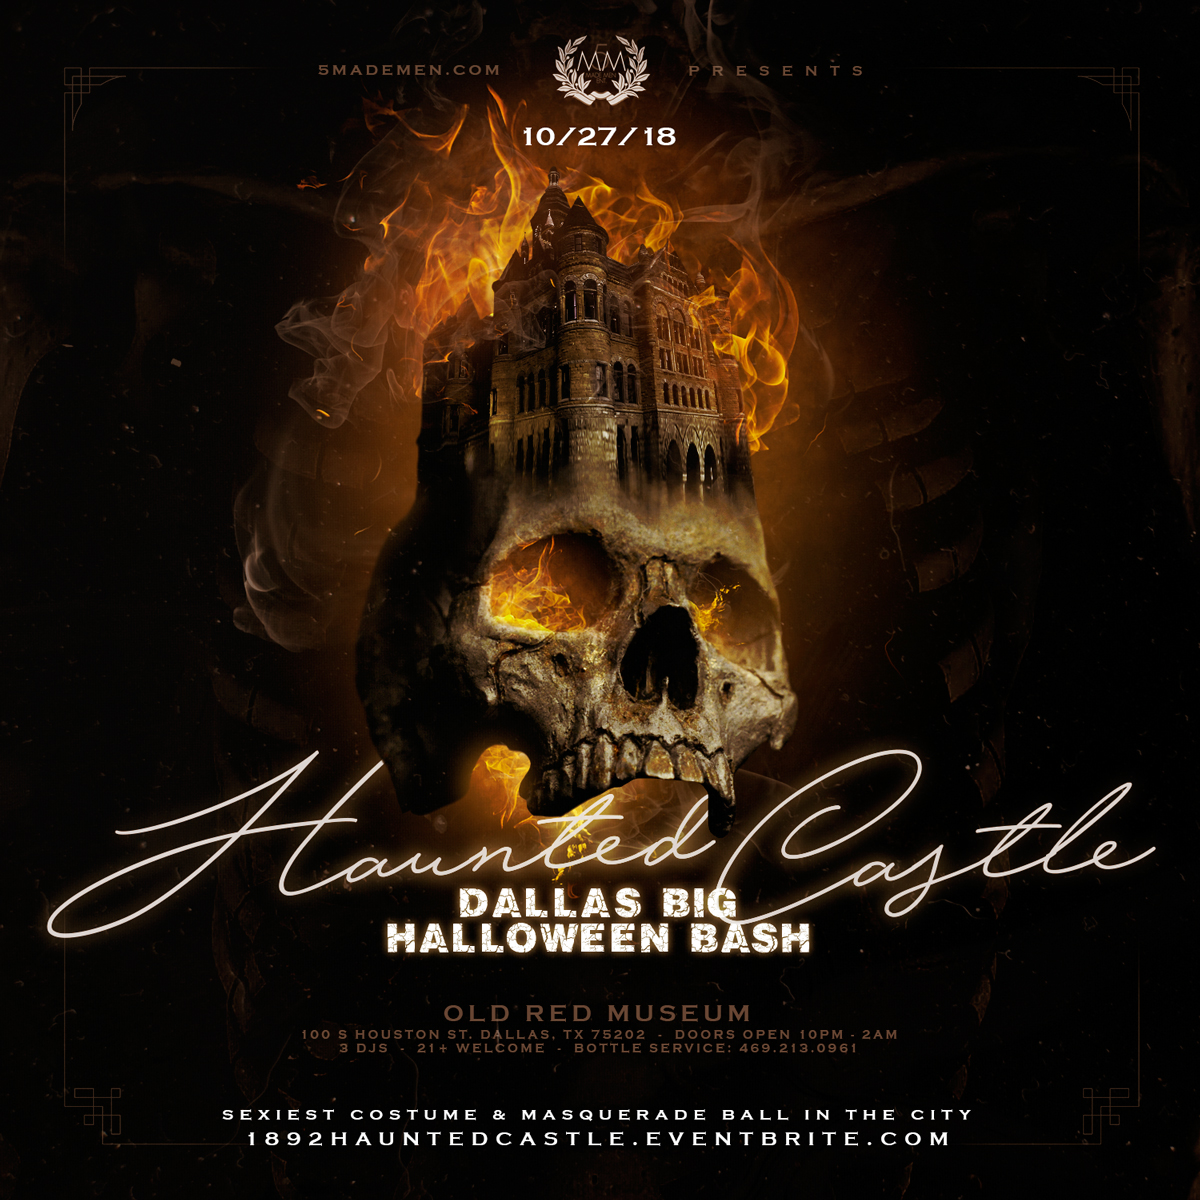 haunted castle - dallas big halloween bash ::: sexiest costume